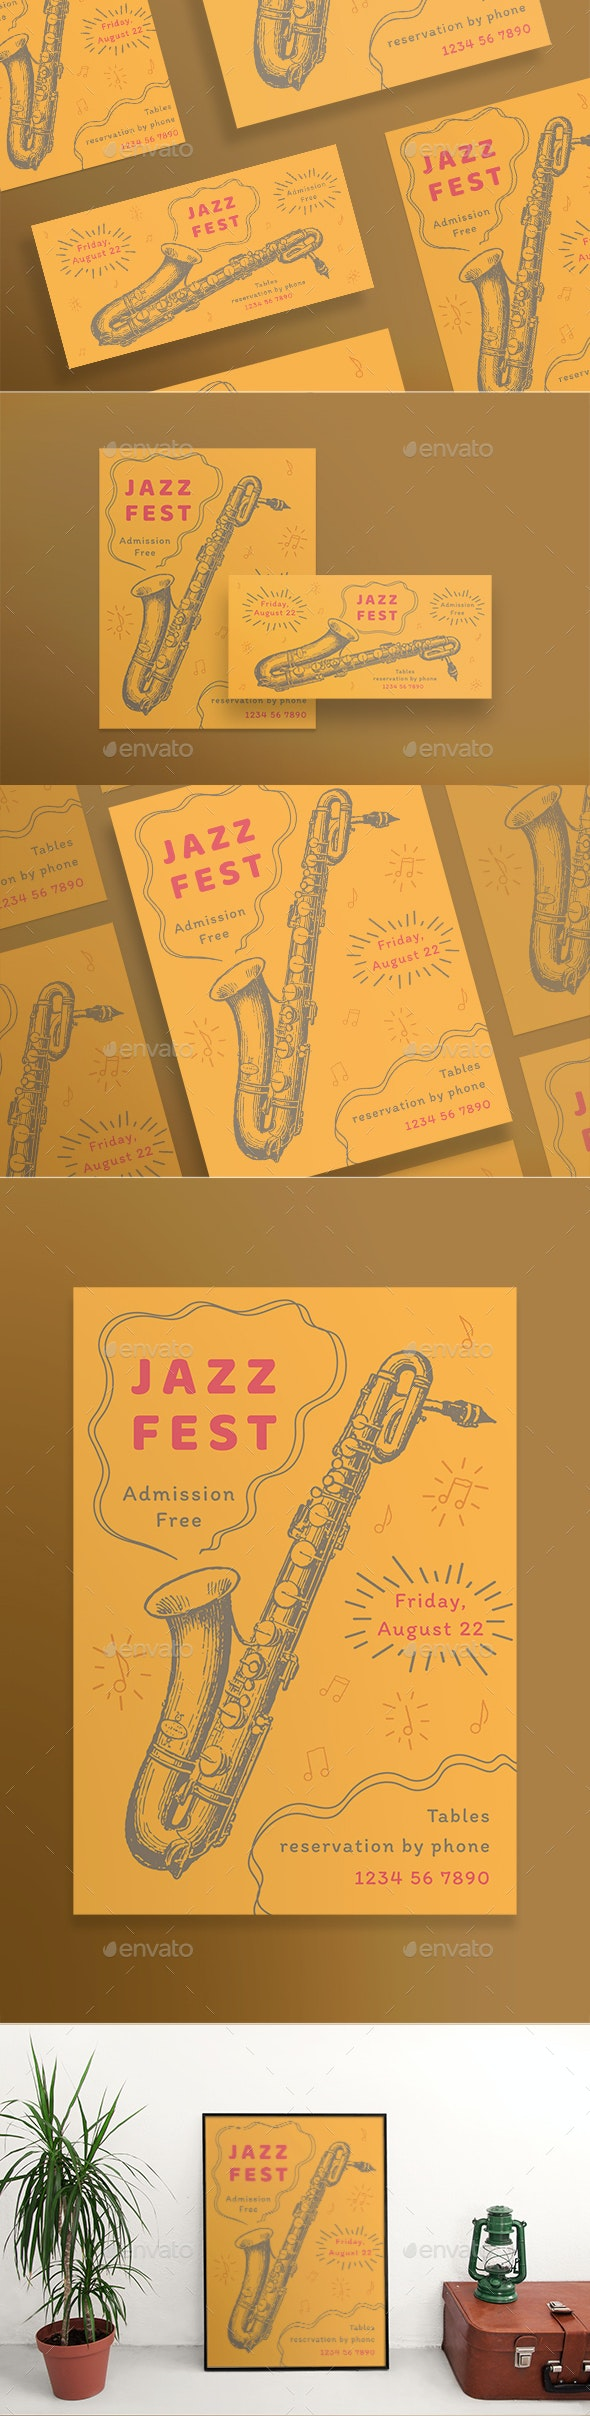 Jazz Festival Flyers - Concerts Events